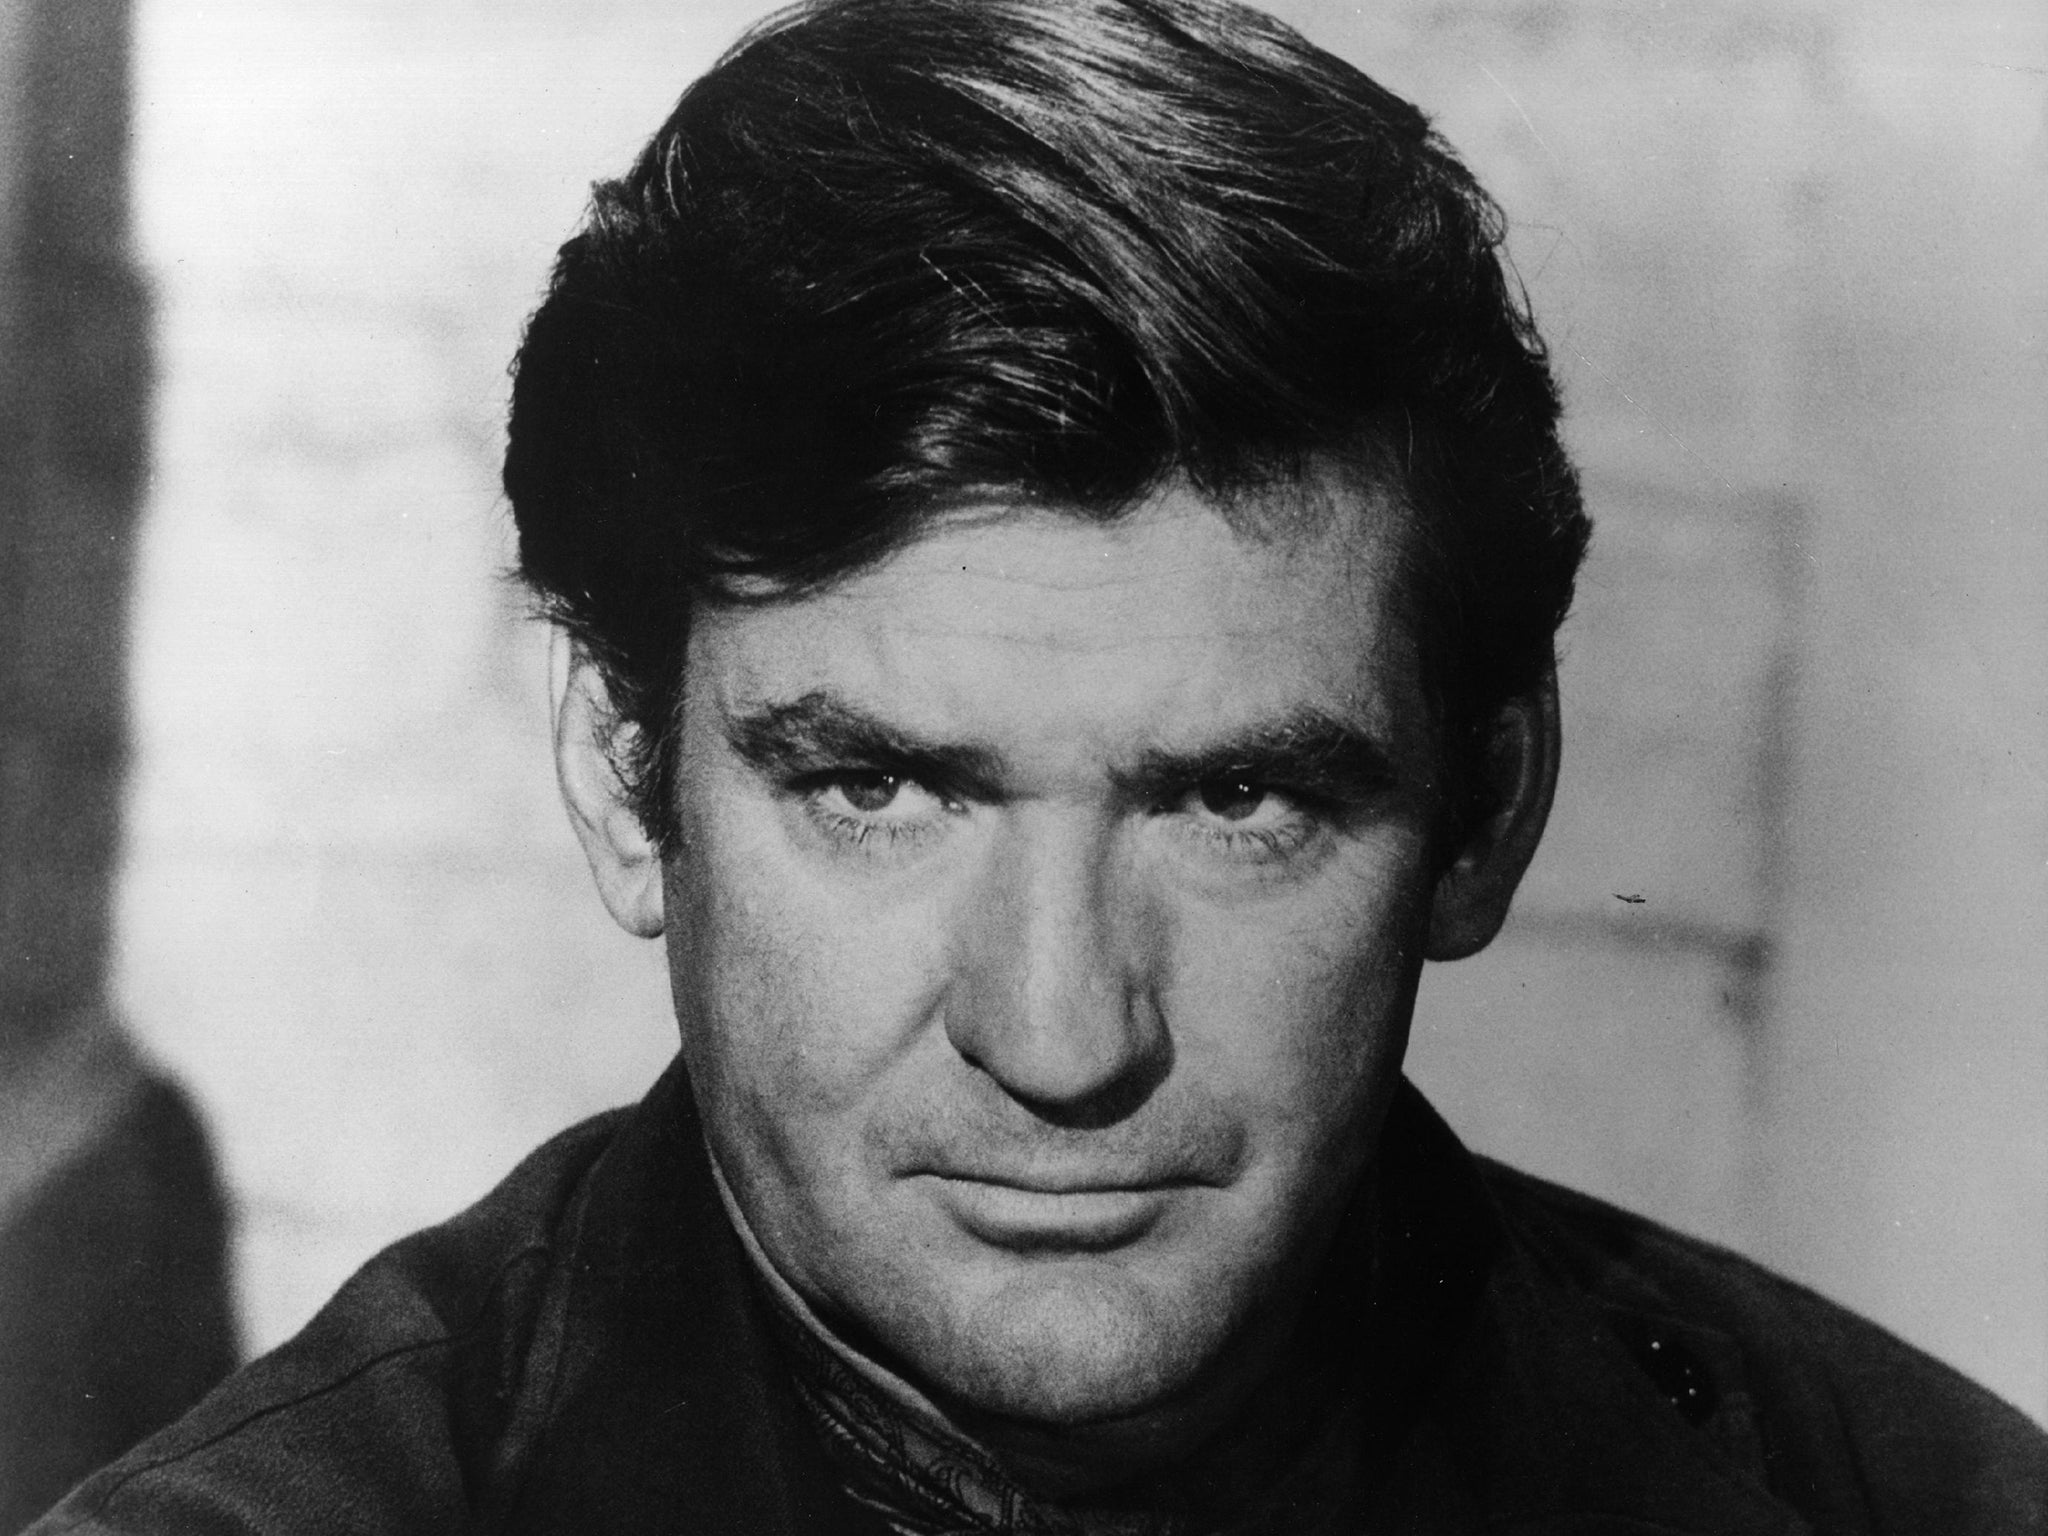 rod taylor died